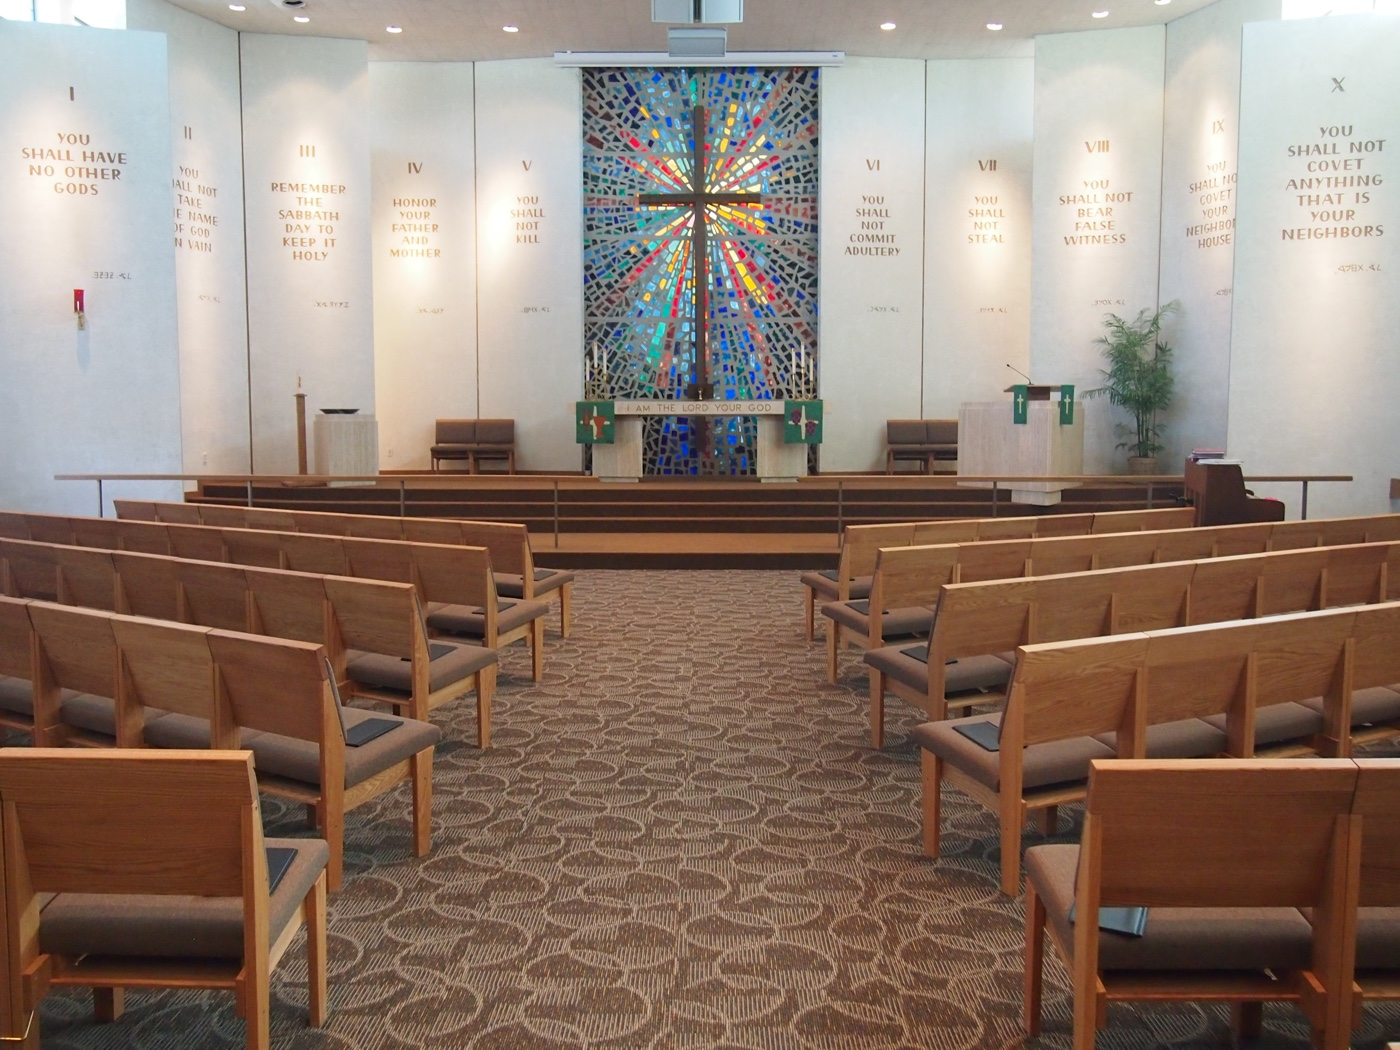 Interior Sanctuary